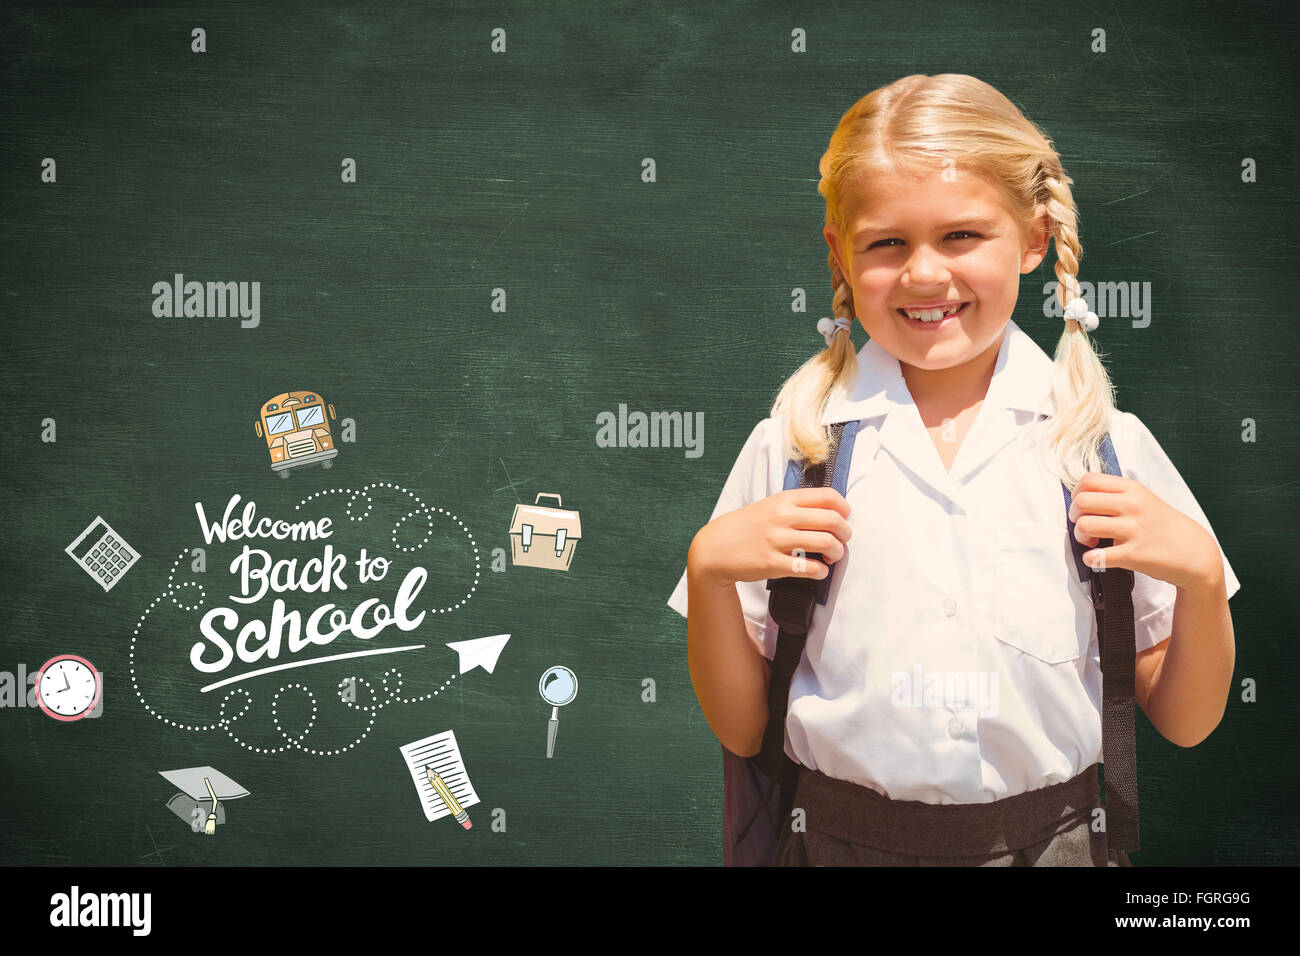 Composite image of cute pupil smiling at camera by the school bus - Stock Image